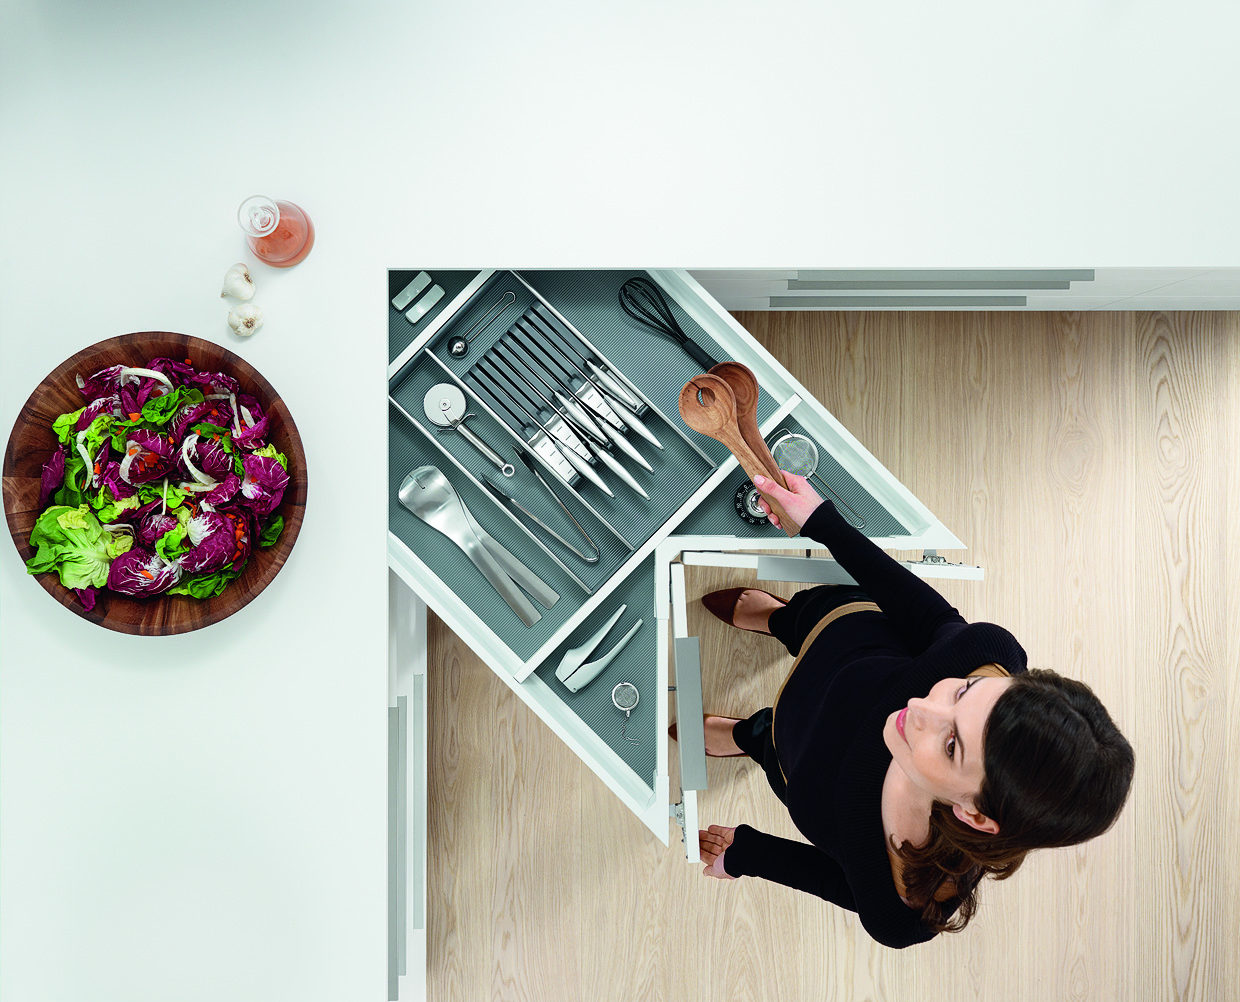 Blum S Space Corner Drawers Provide Unparalleled Access Into Those Hard To Reach Cabinets